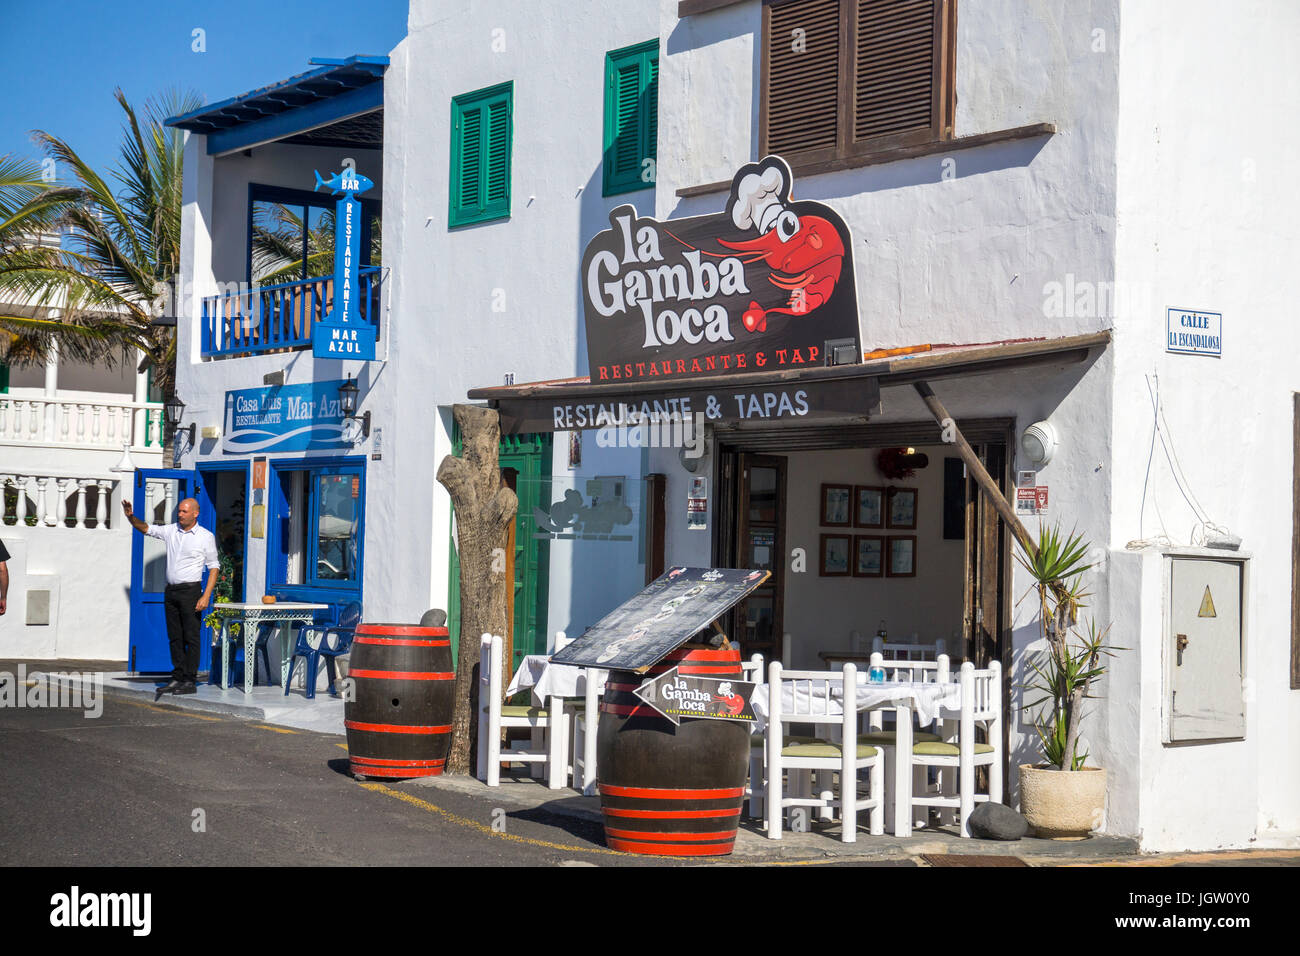 Seafood restaurant and Tapas-Bar at fishing village El Golfo, Lanzarote island, Canary islands, Spain, Europe Stock Photo